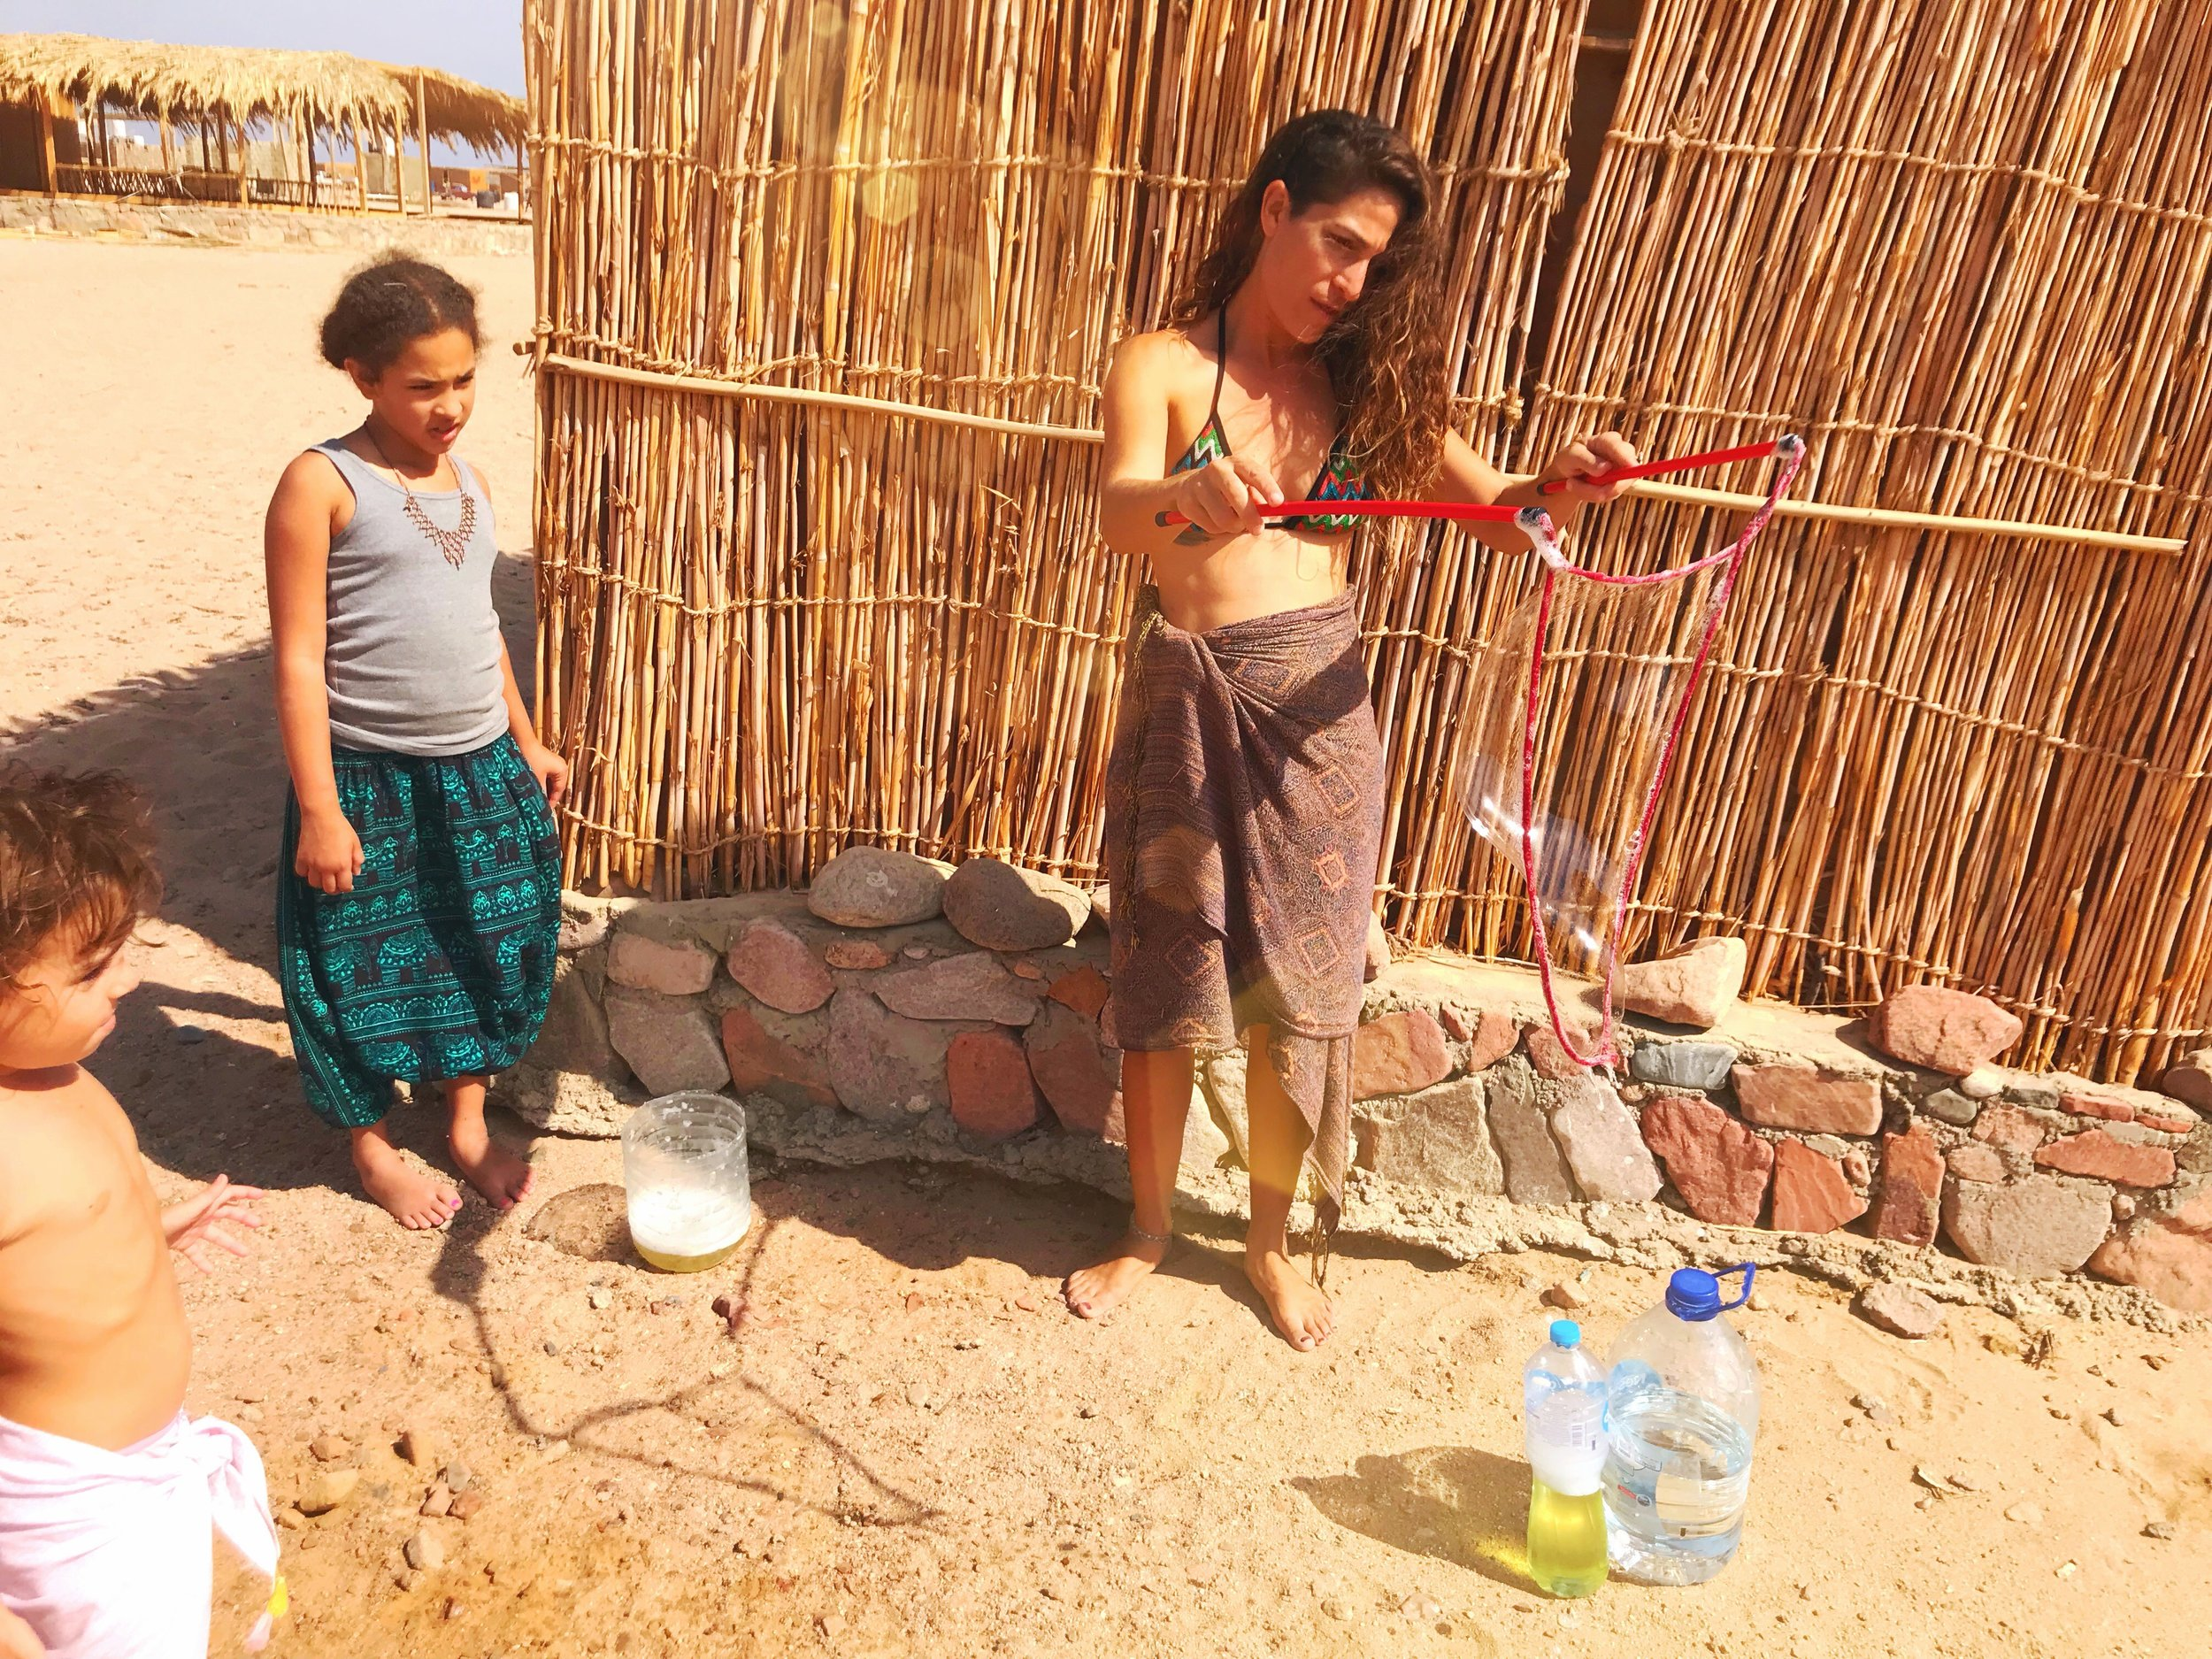 Making bubbles with an Israeli traveler in Abu Galum